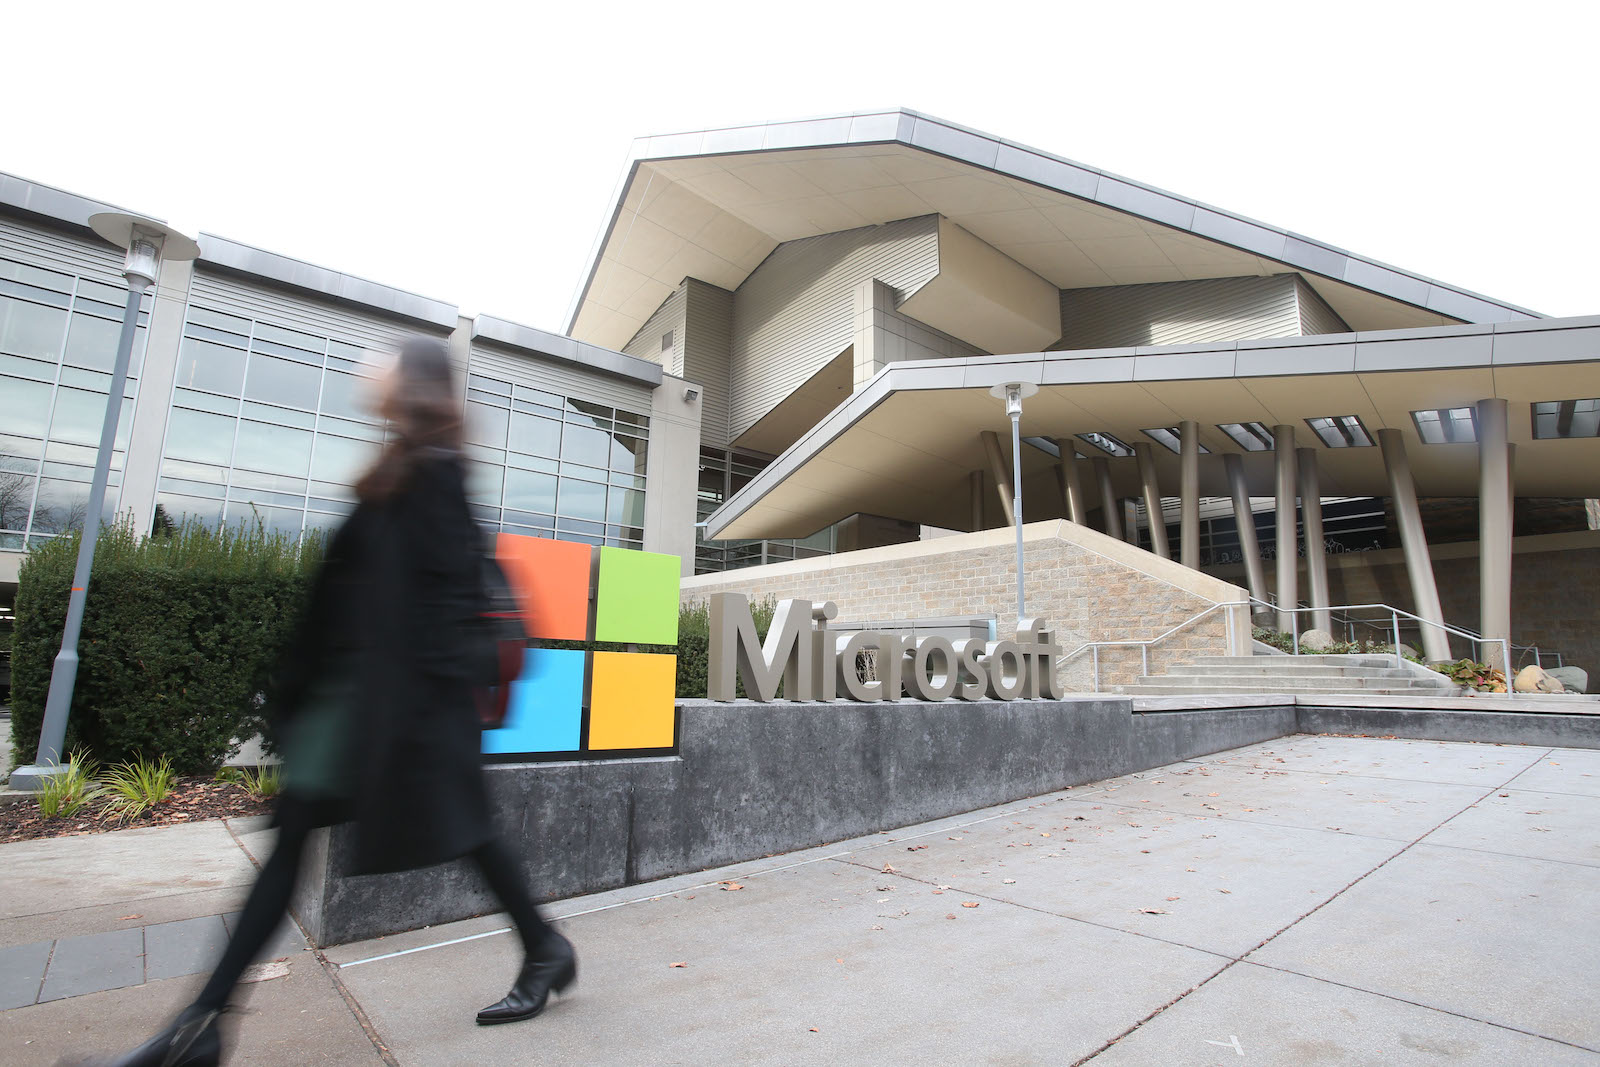 REDMOND ,US, Dec. 3, 2019 - Photo taken on Nov. 14, 2019 shows the Microsoft headquarters in Redmond, the United States. The world will continue to see technological breakthroughs in artificial intelligence ,AI, and their potential application in healthcare and financial services will have a transformative impact on human life, Harry Shum has said. (Photo by Wang Ying/Xinhua via Getty) TO GO WITH Interview: AI breakthroughs potentially to reshape healthcare, finance: Microsoft AI chief